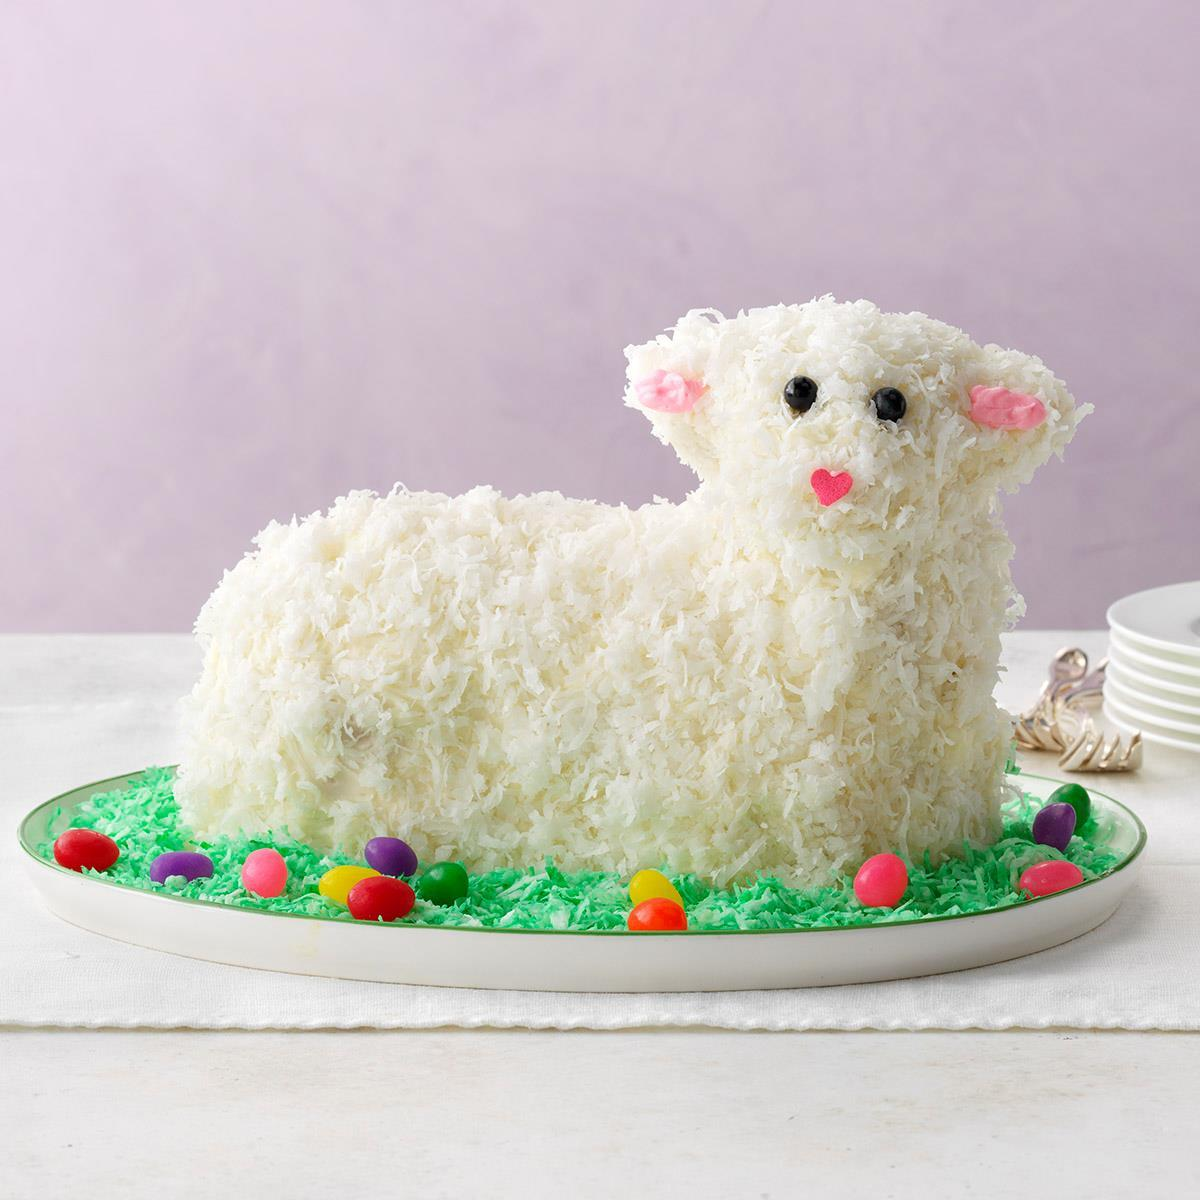 Easter Lamb Cake Recipe | Taste of Home